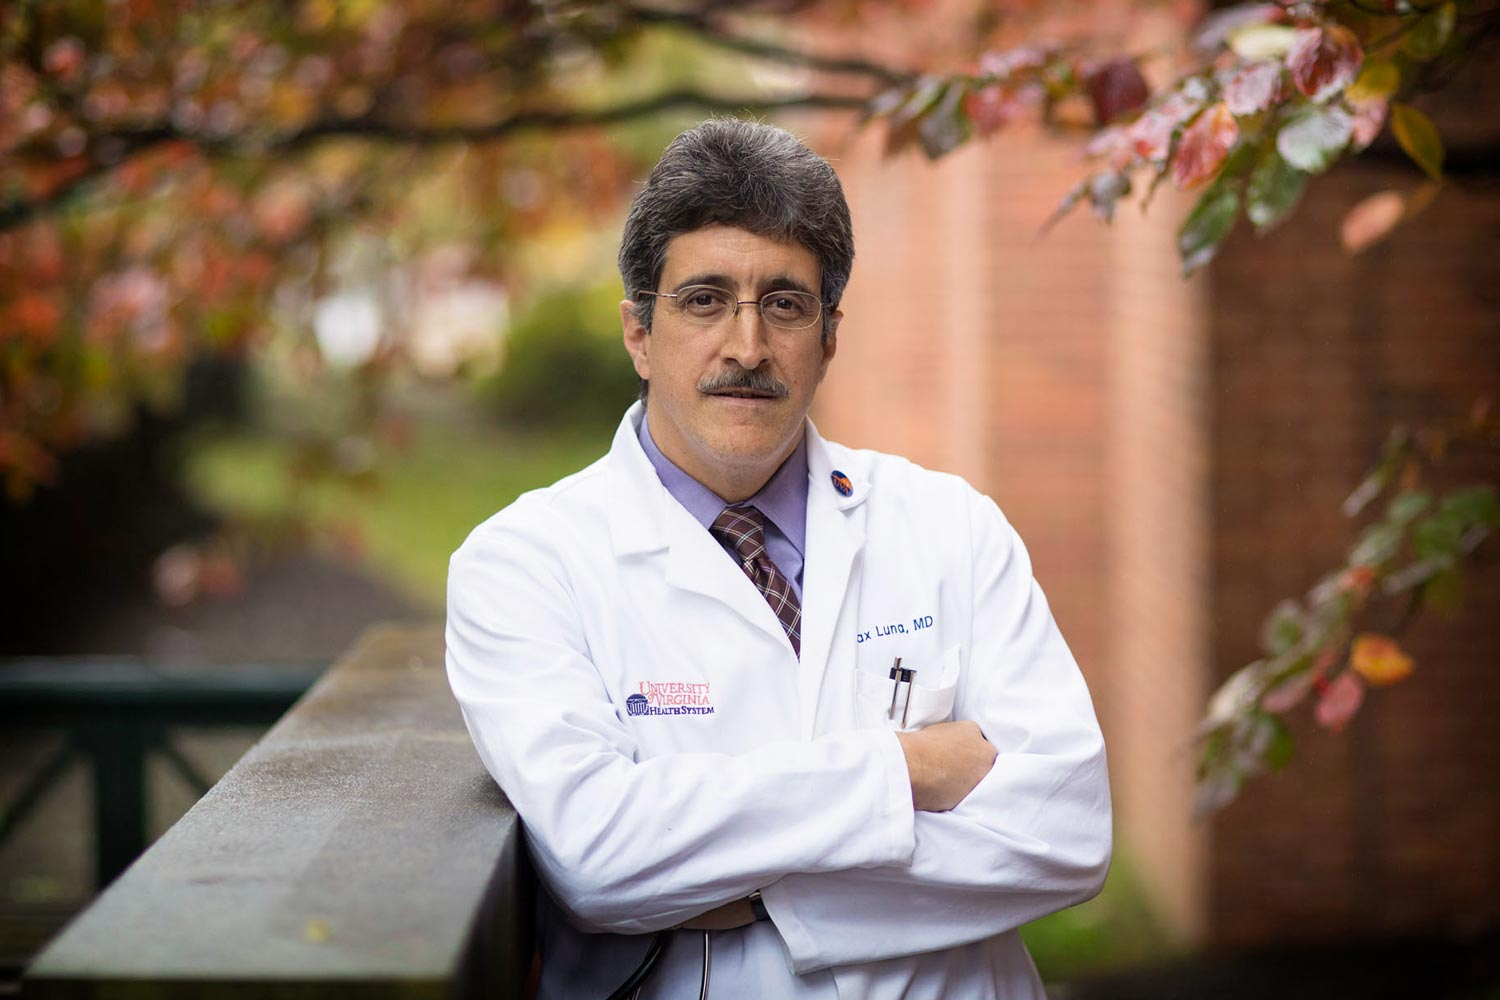 Dr. Max Luna founded the Latino Health Initiative last year to serve the local Latino community.